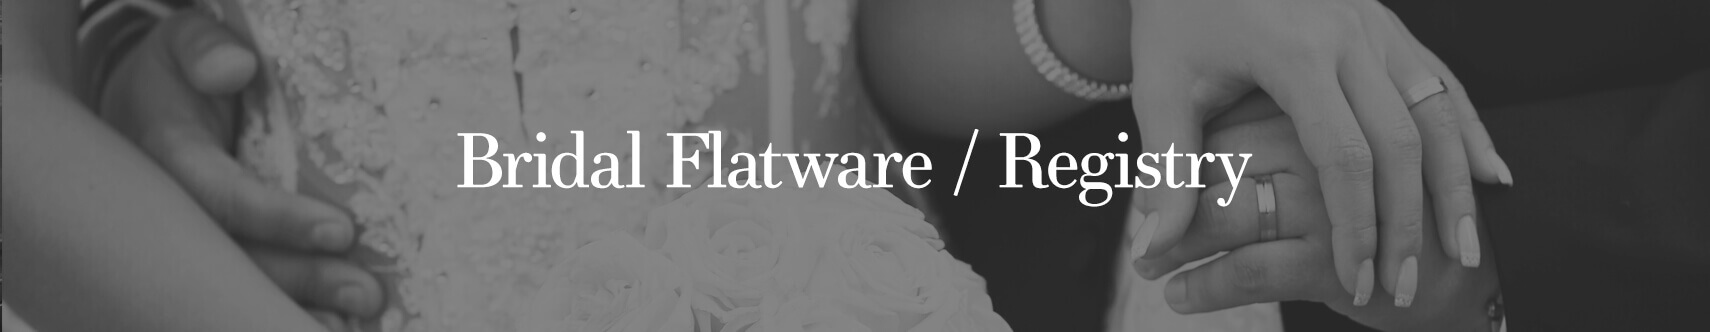 Bridal Flatware/Registry